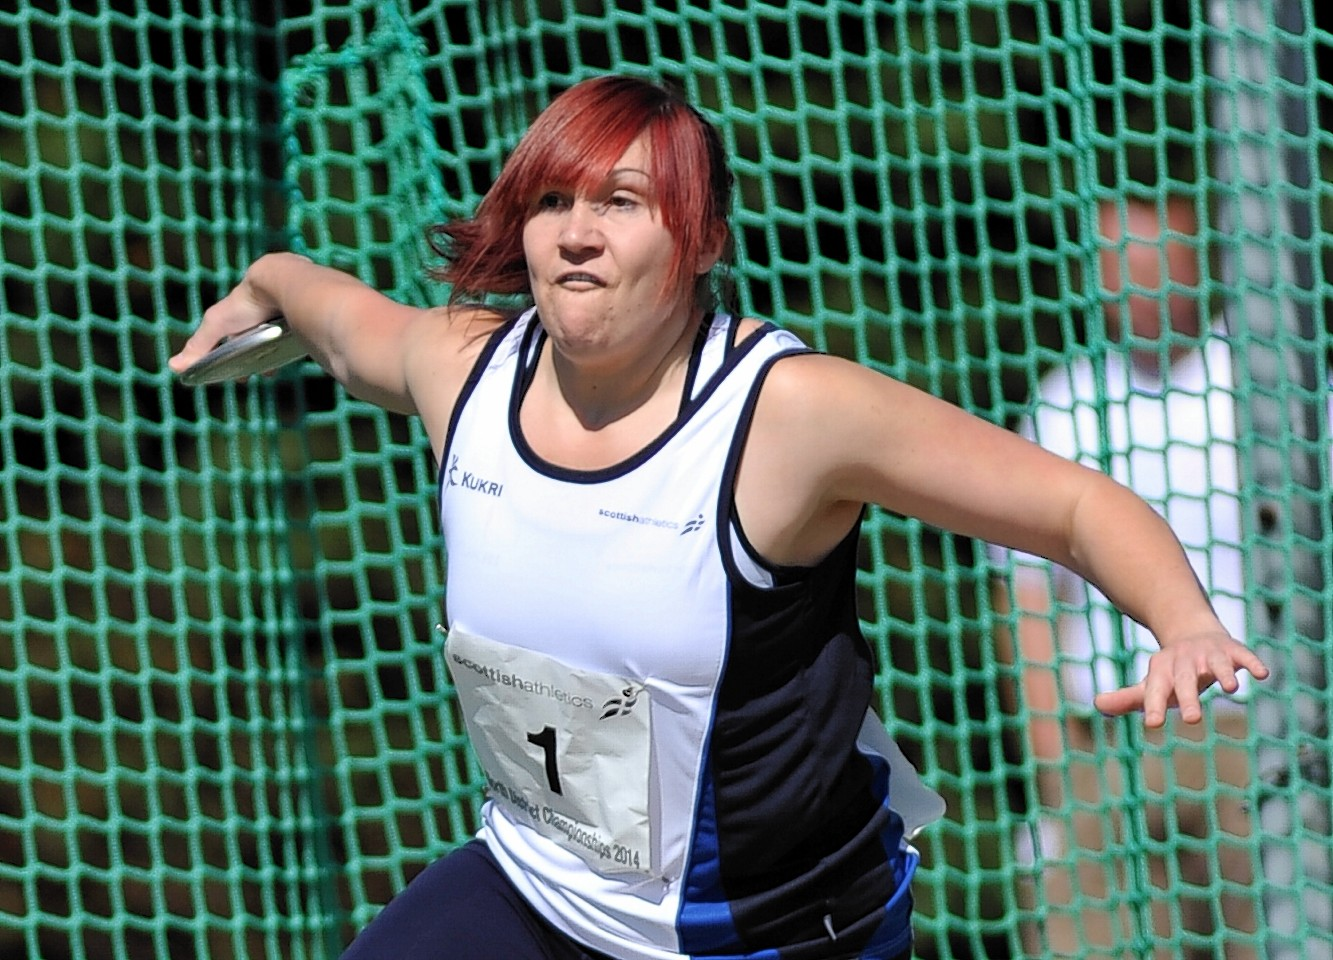 DIscus thrower Kirsty Law